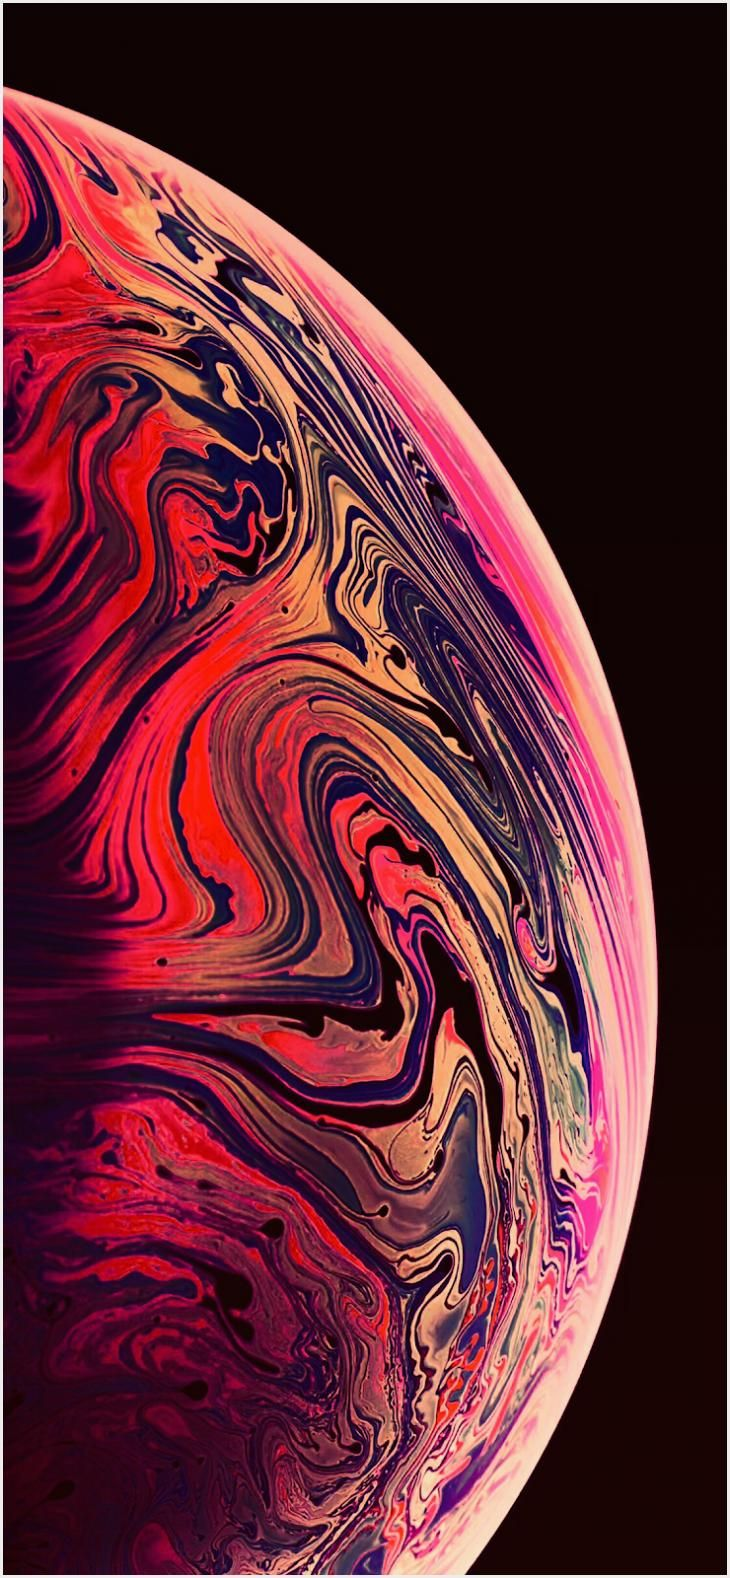 23 iPhone Xs Max 4k Wallpaper Ideas in 2020 (With images